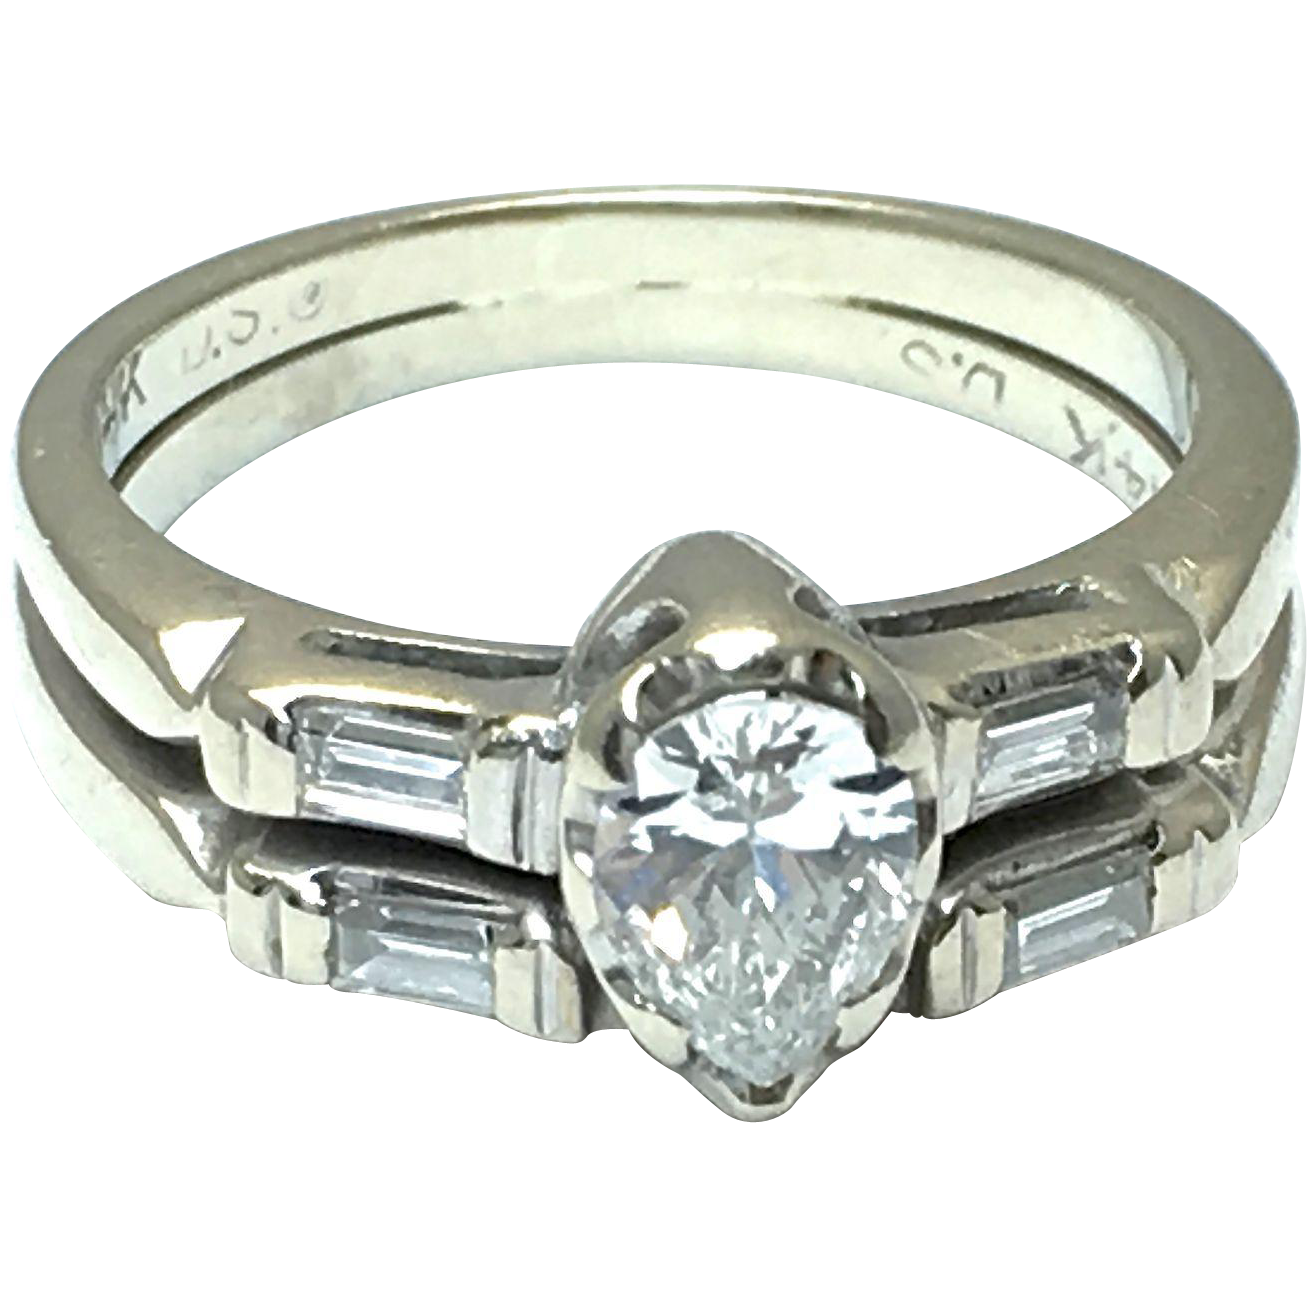 14K White Gold Pear Shape Diamond Ring with Baguette Diamonds and Matching Band - Color J - Clarity VS1